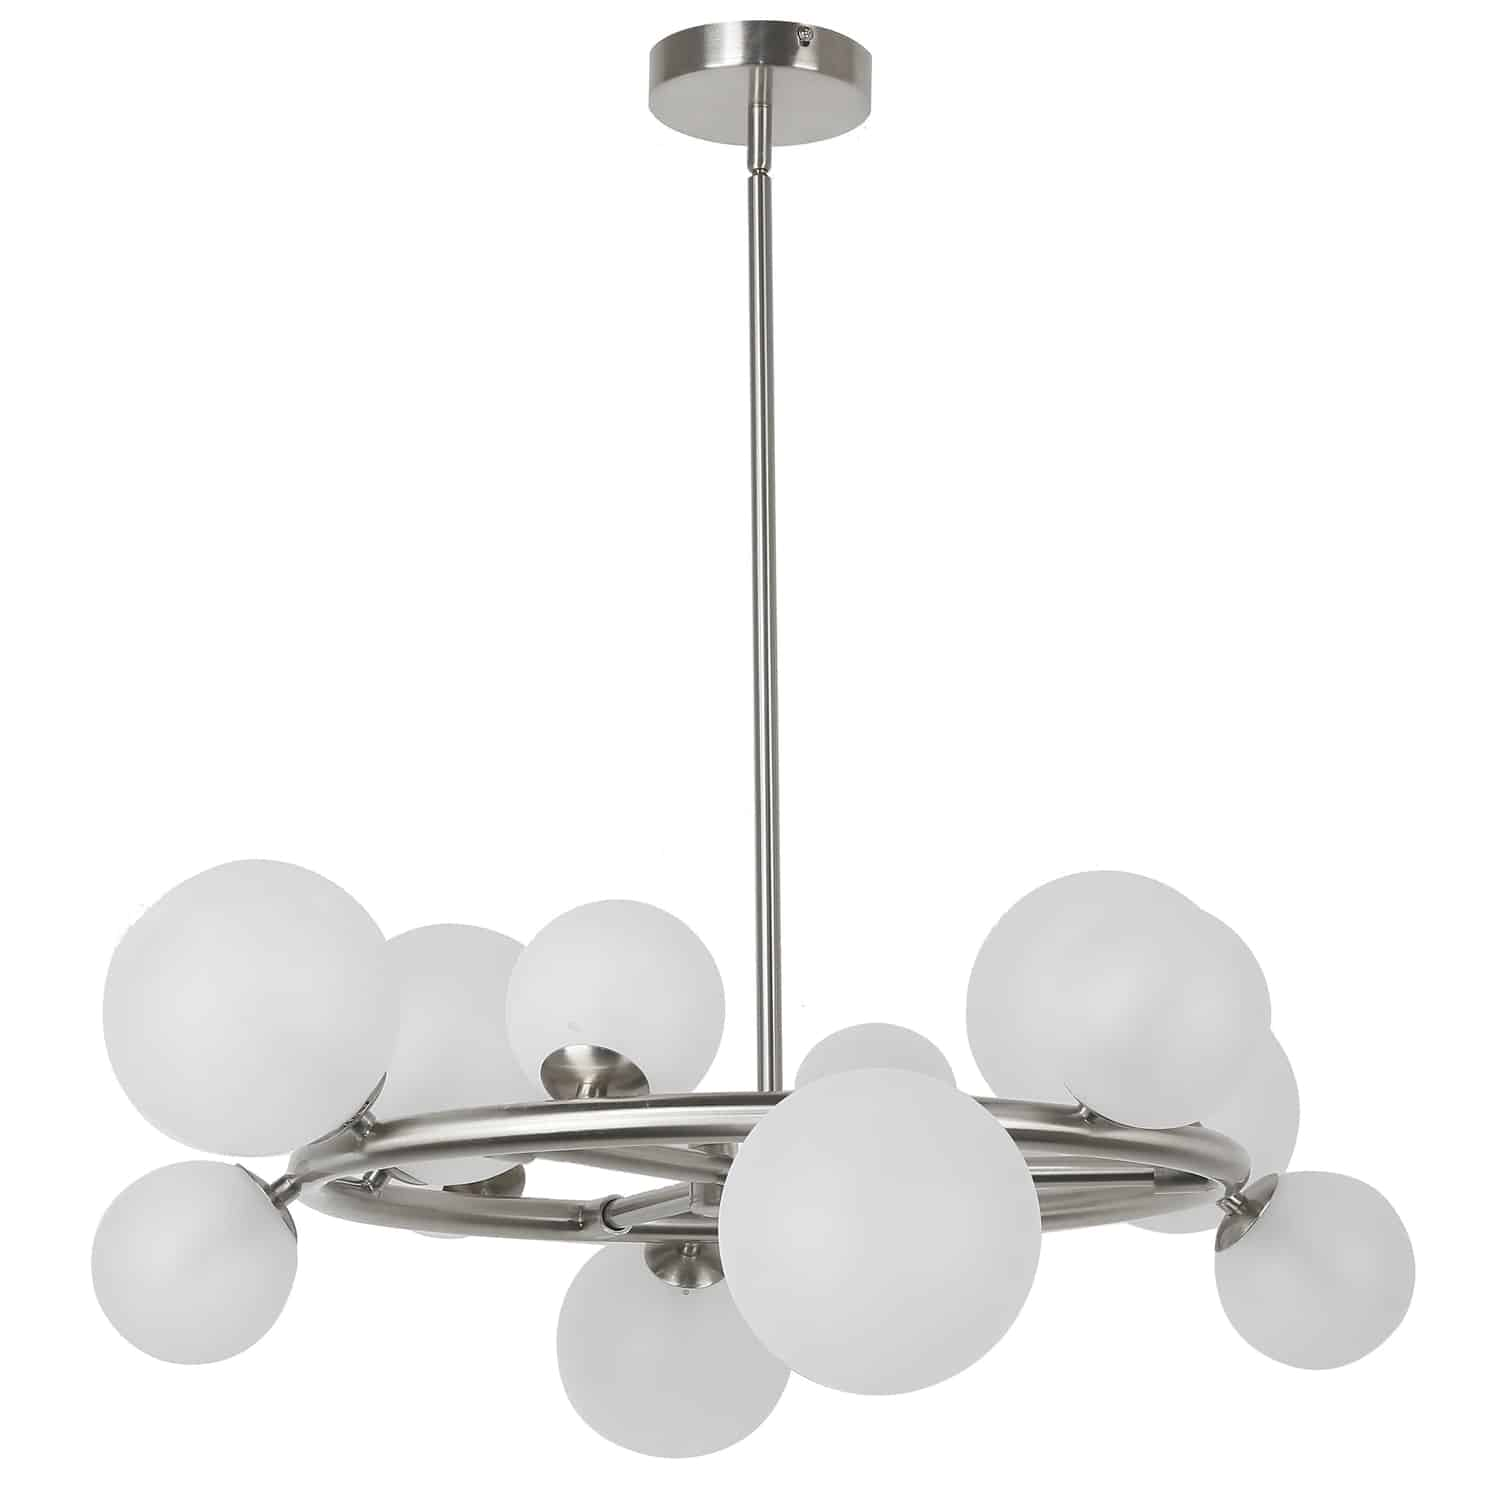 12 Light Halogen Round Chandelier, Polished Chrome Finish with White Glass